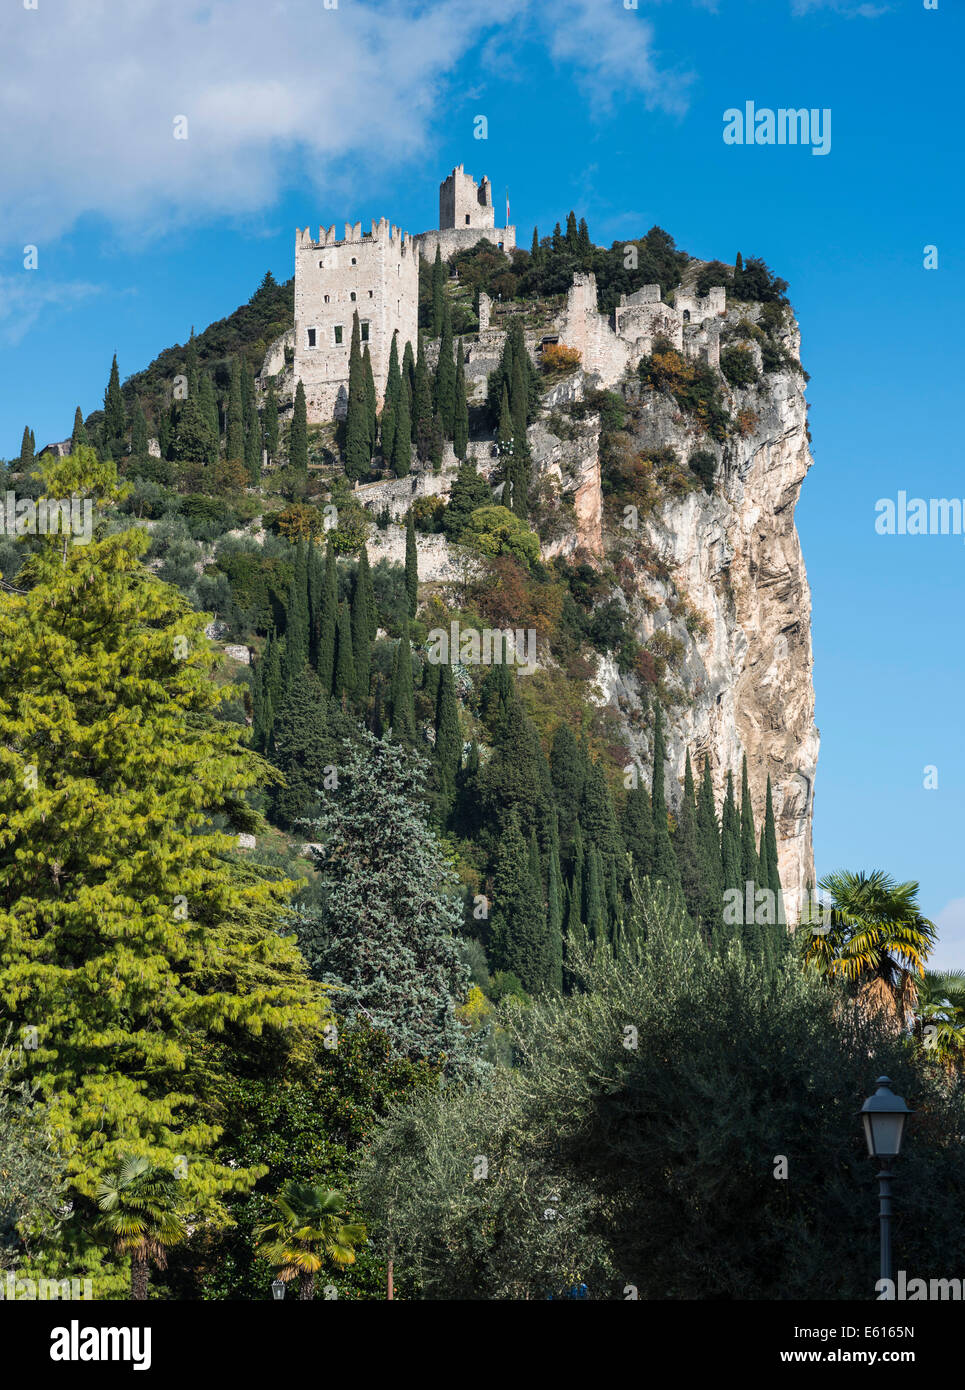 Mighty cliff with the ruins of Arco Castle or Castello di Arco above Arco, Sarca Valley, Trentino-Alto Adige, Italy Stock Photo